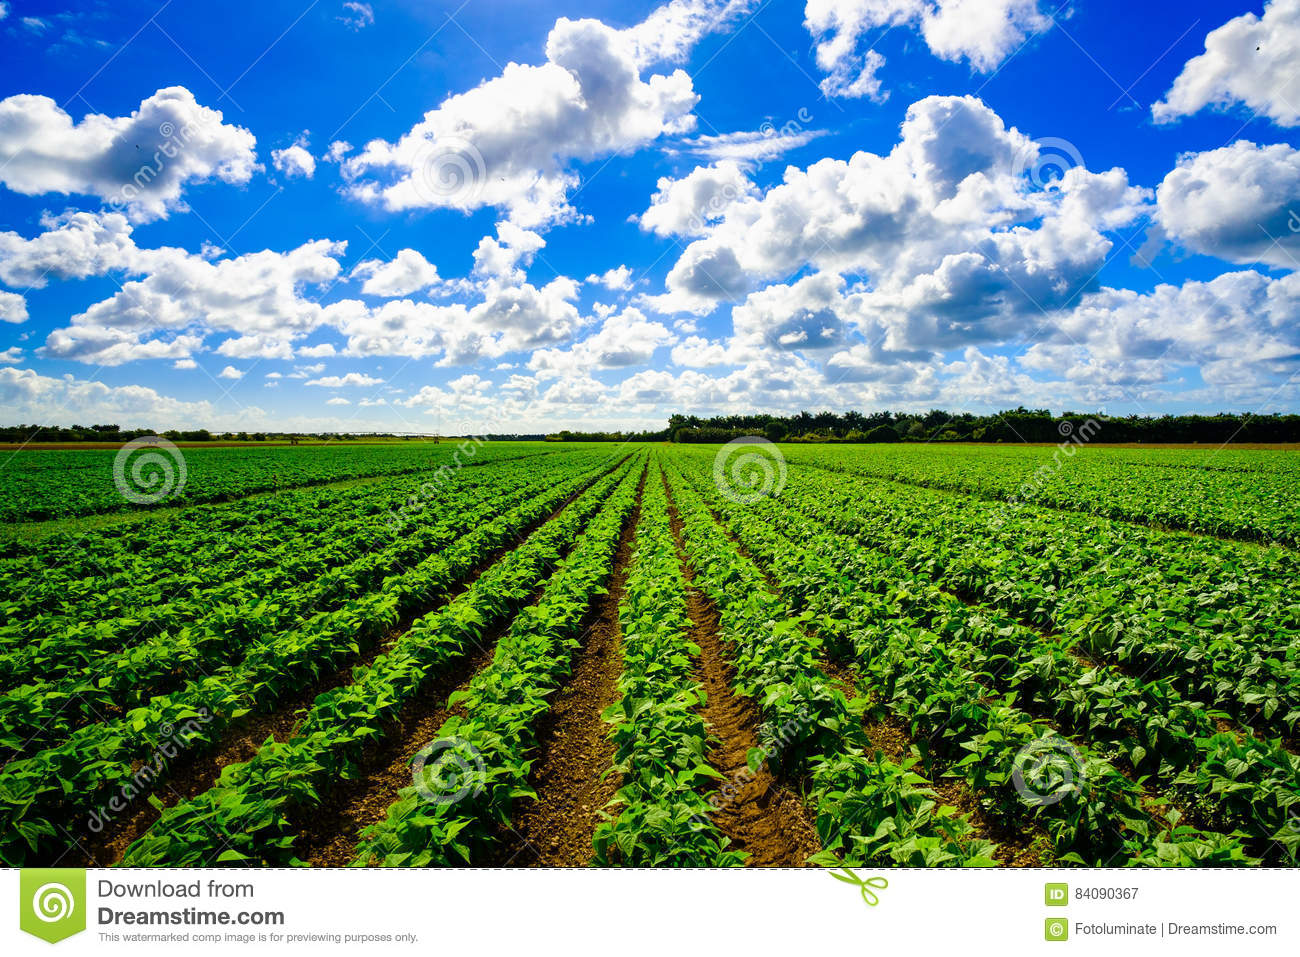 Agriculture vegetable field